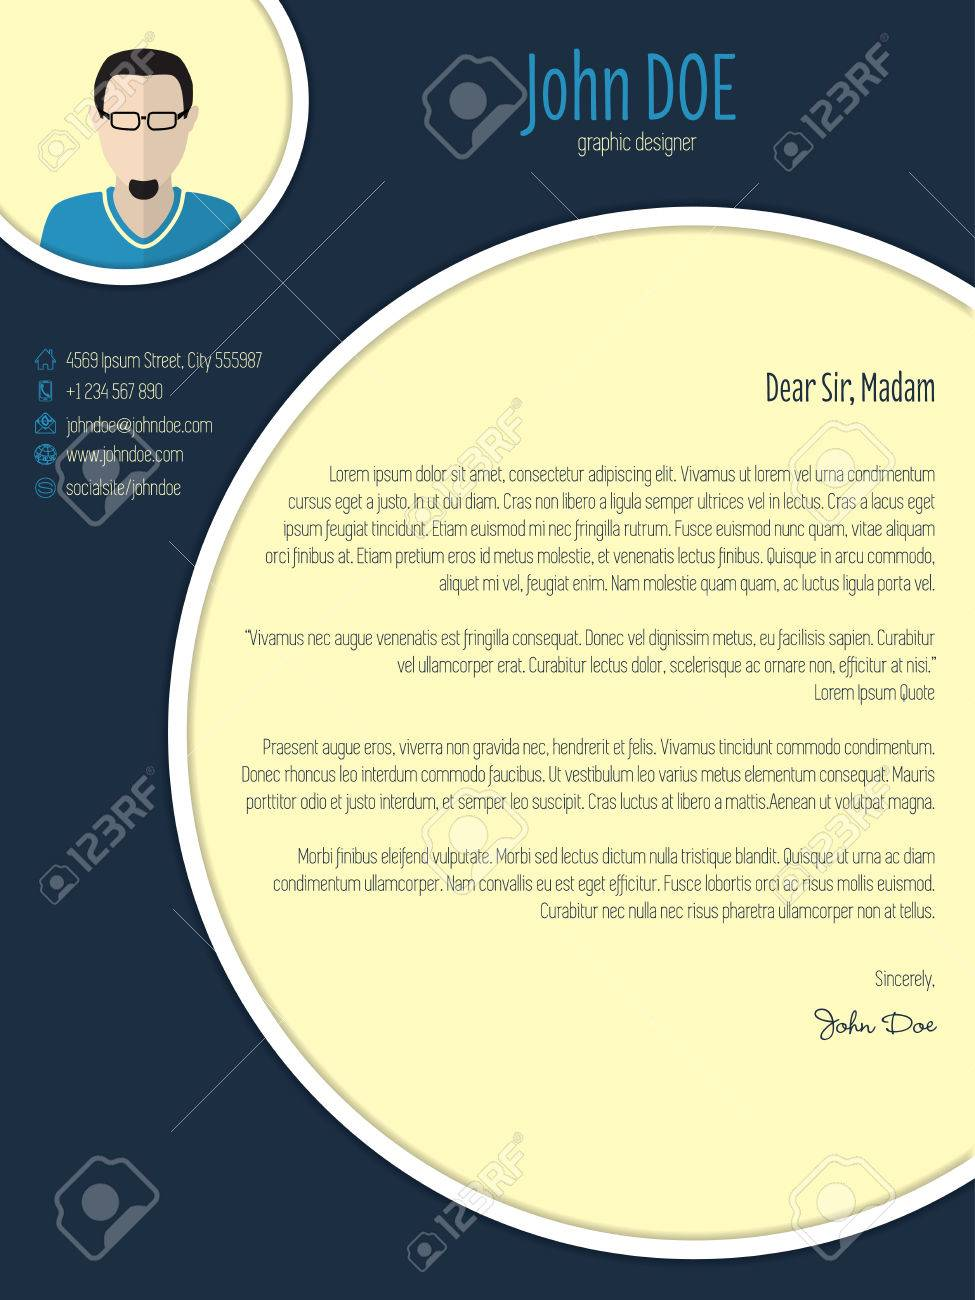 Cool New Modern Cover Letter Template With Circle Elements Royalty ...